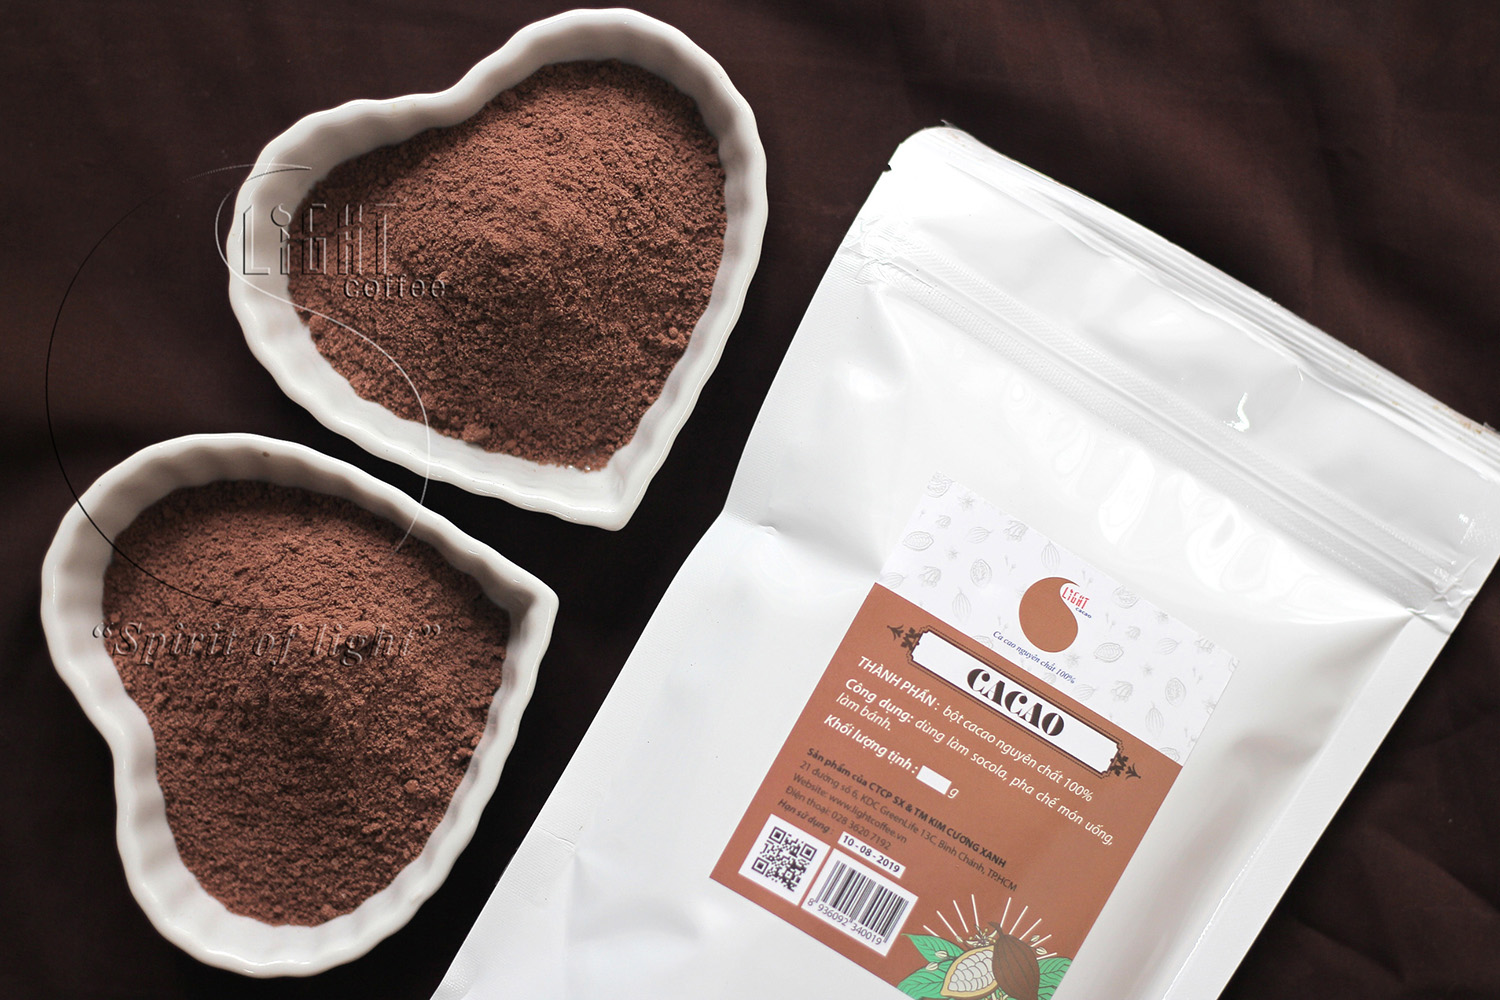 100gr - Bột Cacao sữa (cacao 3IN1) - Light Cacao